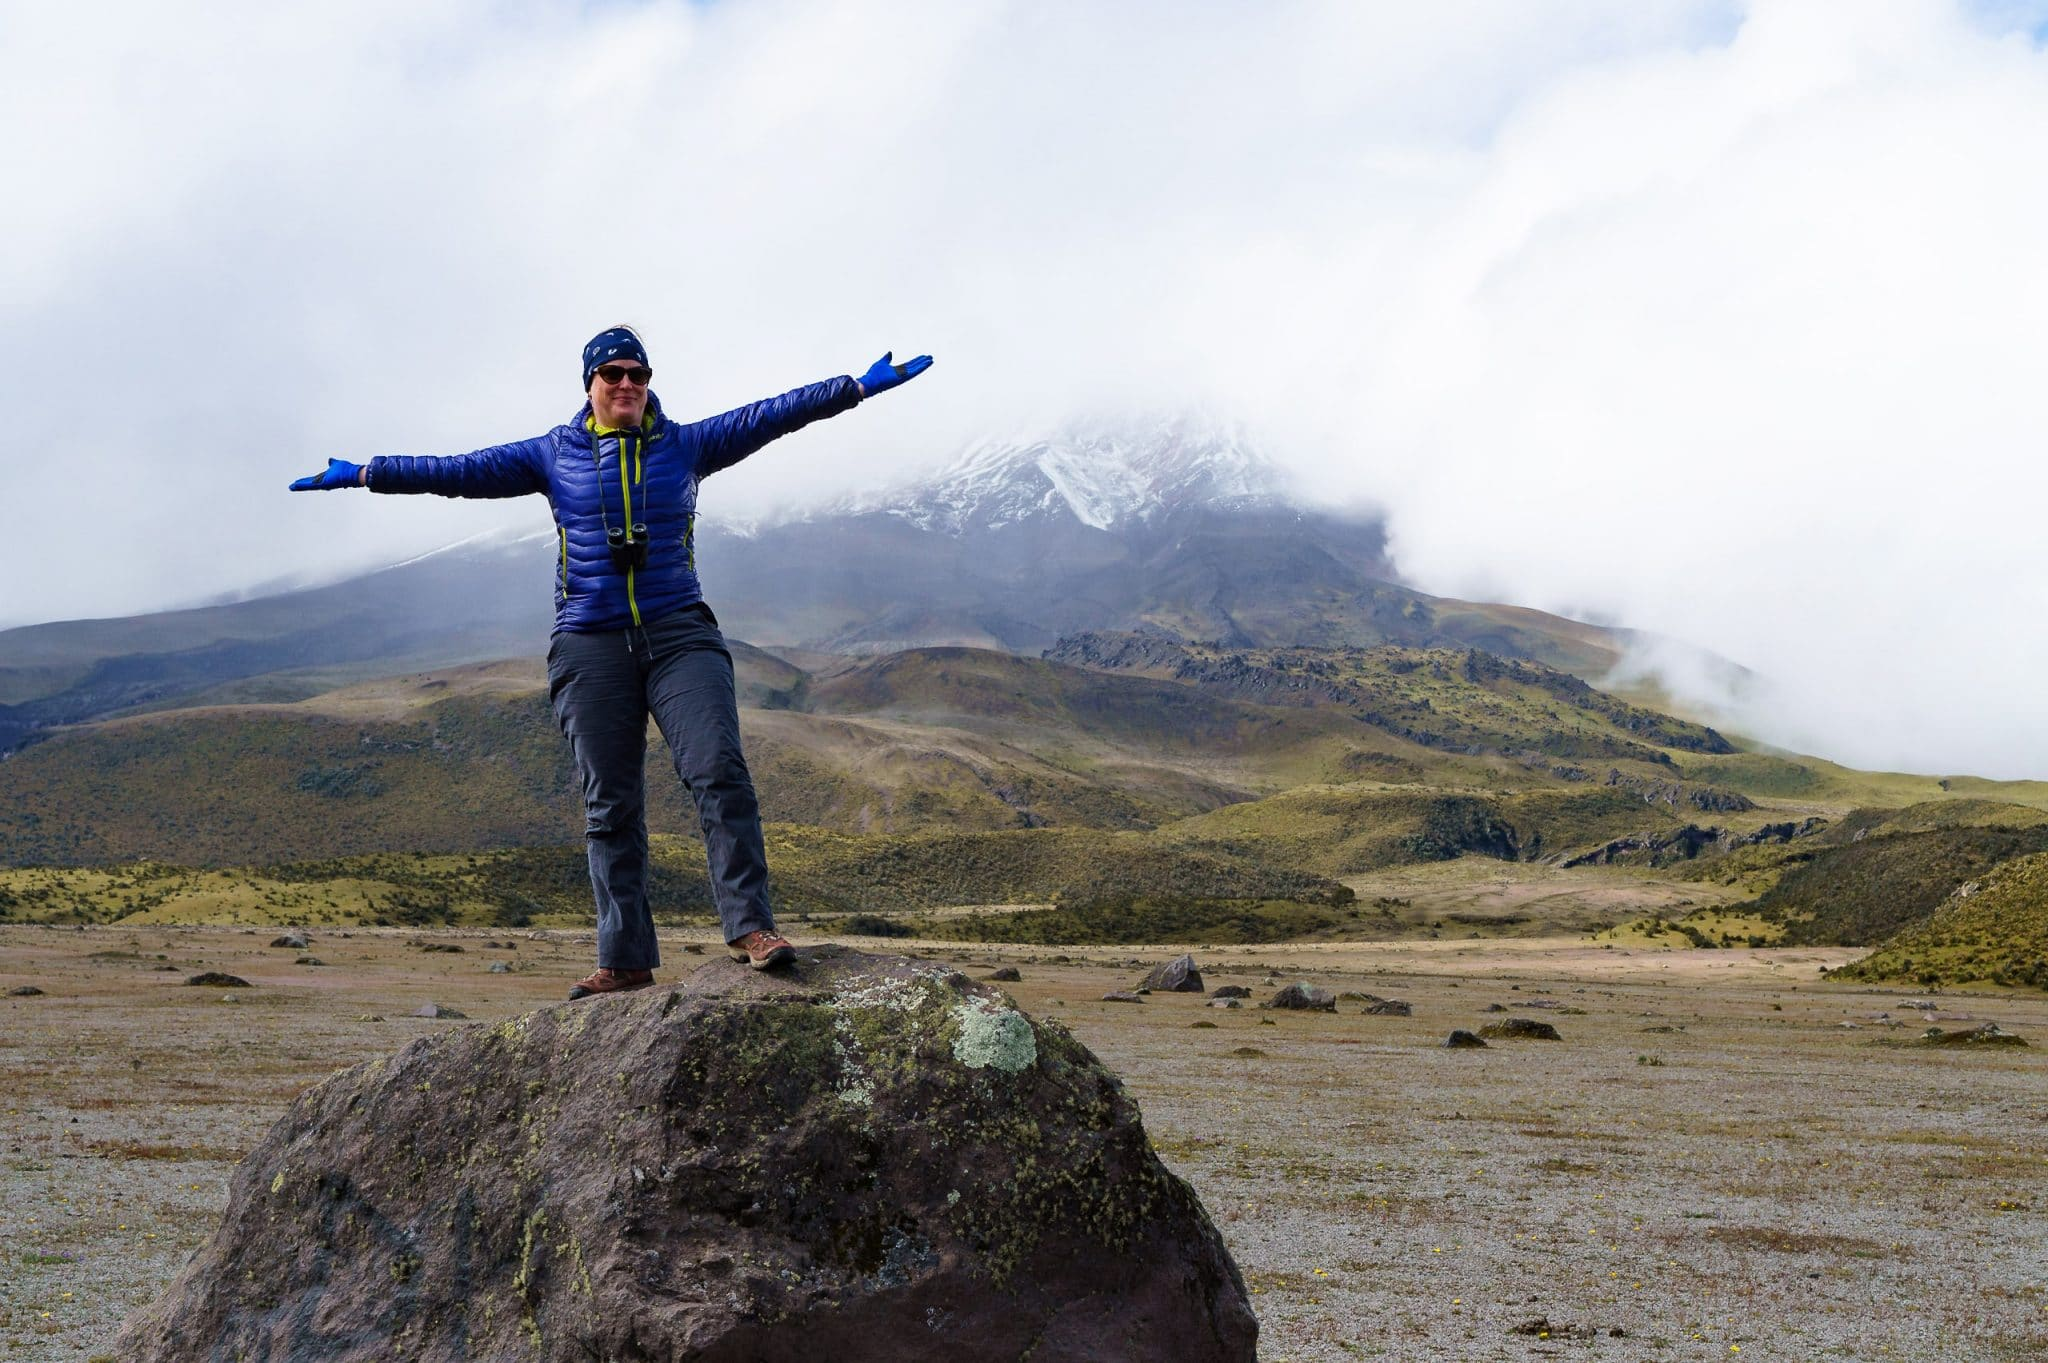 Thea wearing her Marmot Jacket Hiking at Cotopaxi